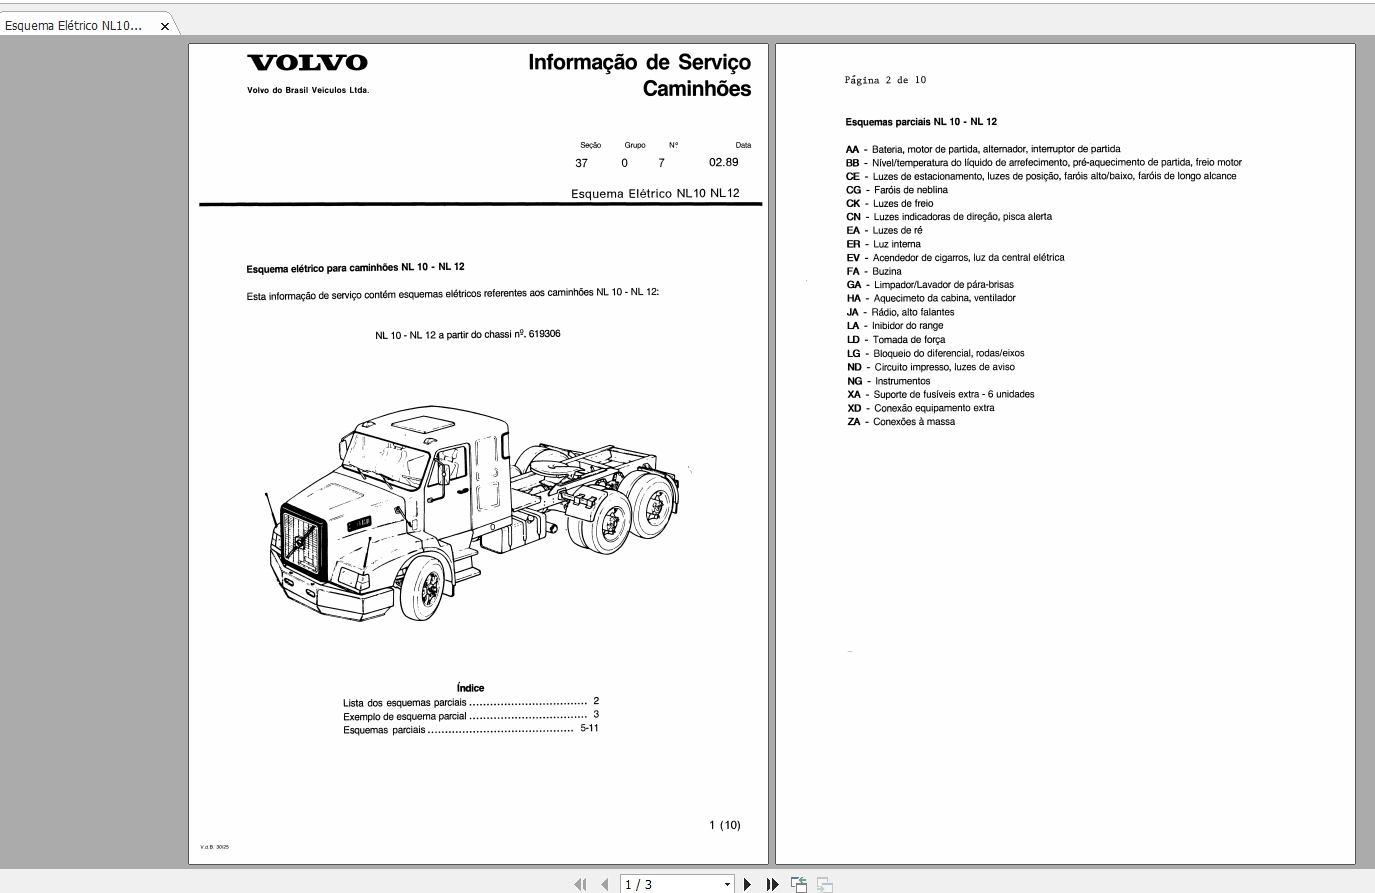 Volvo Truck Nl10  Nl12 Manuals And Diagrams